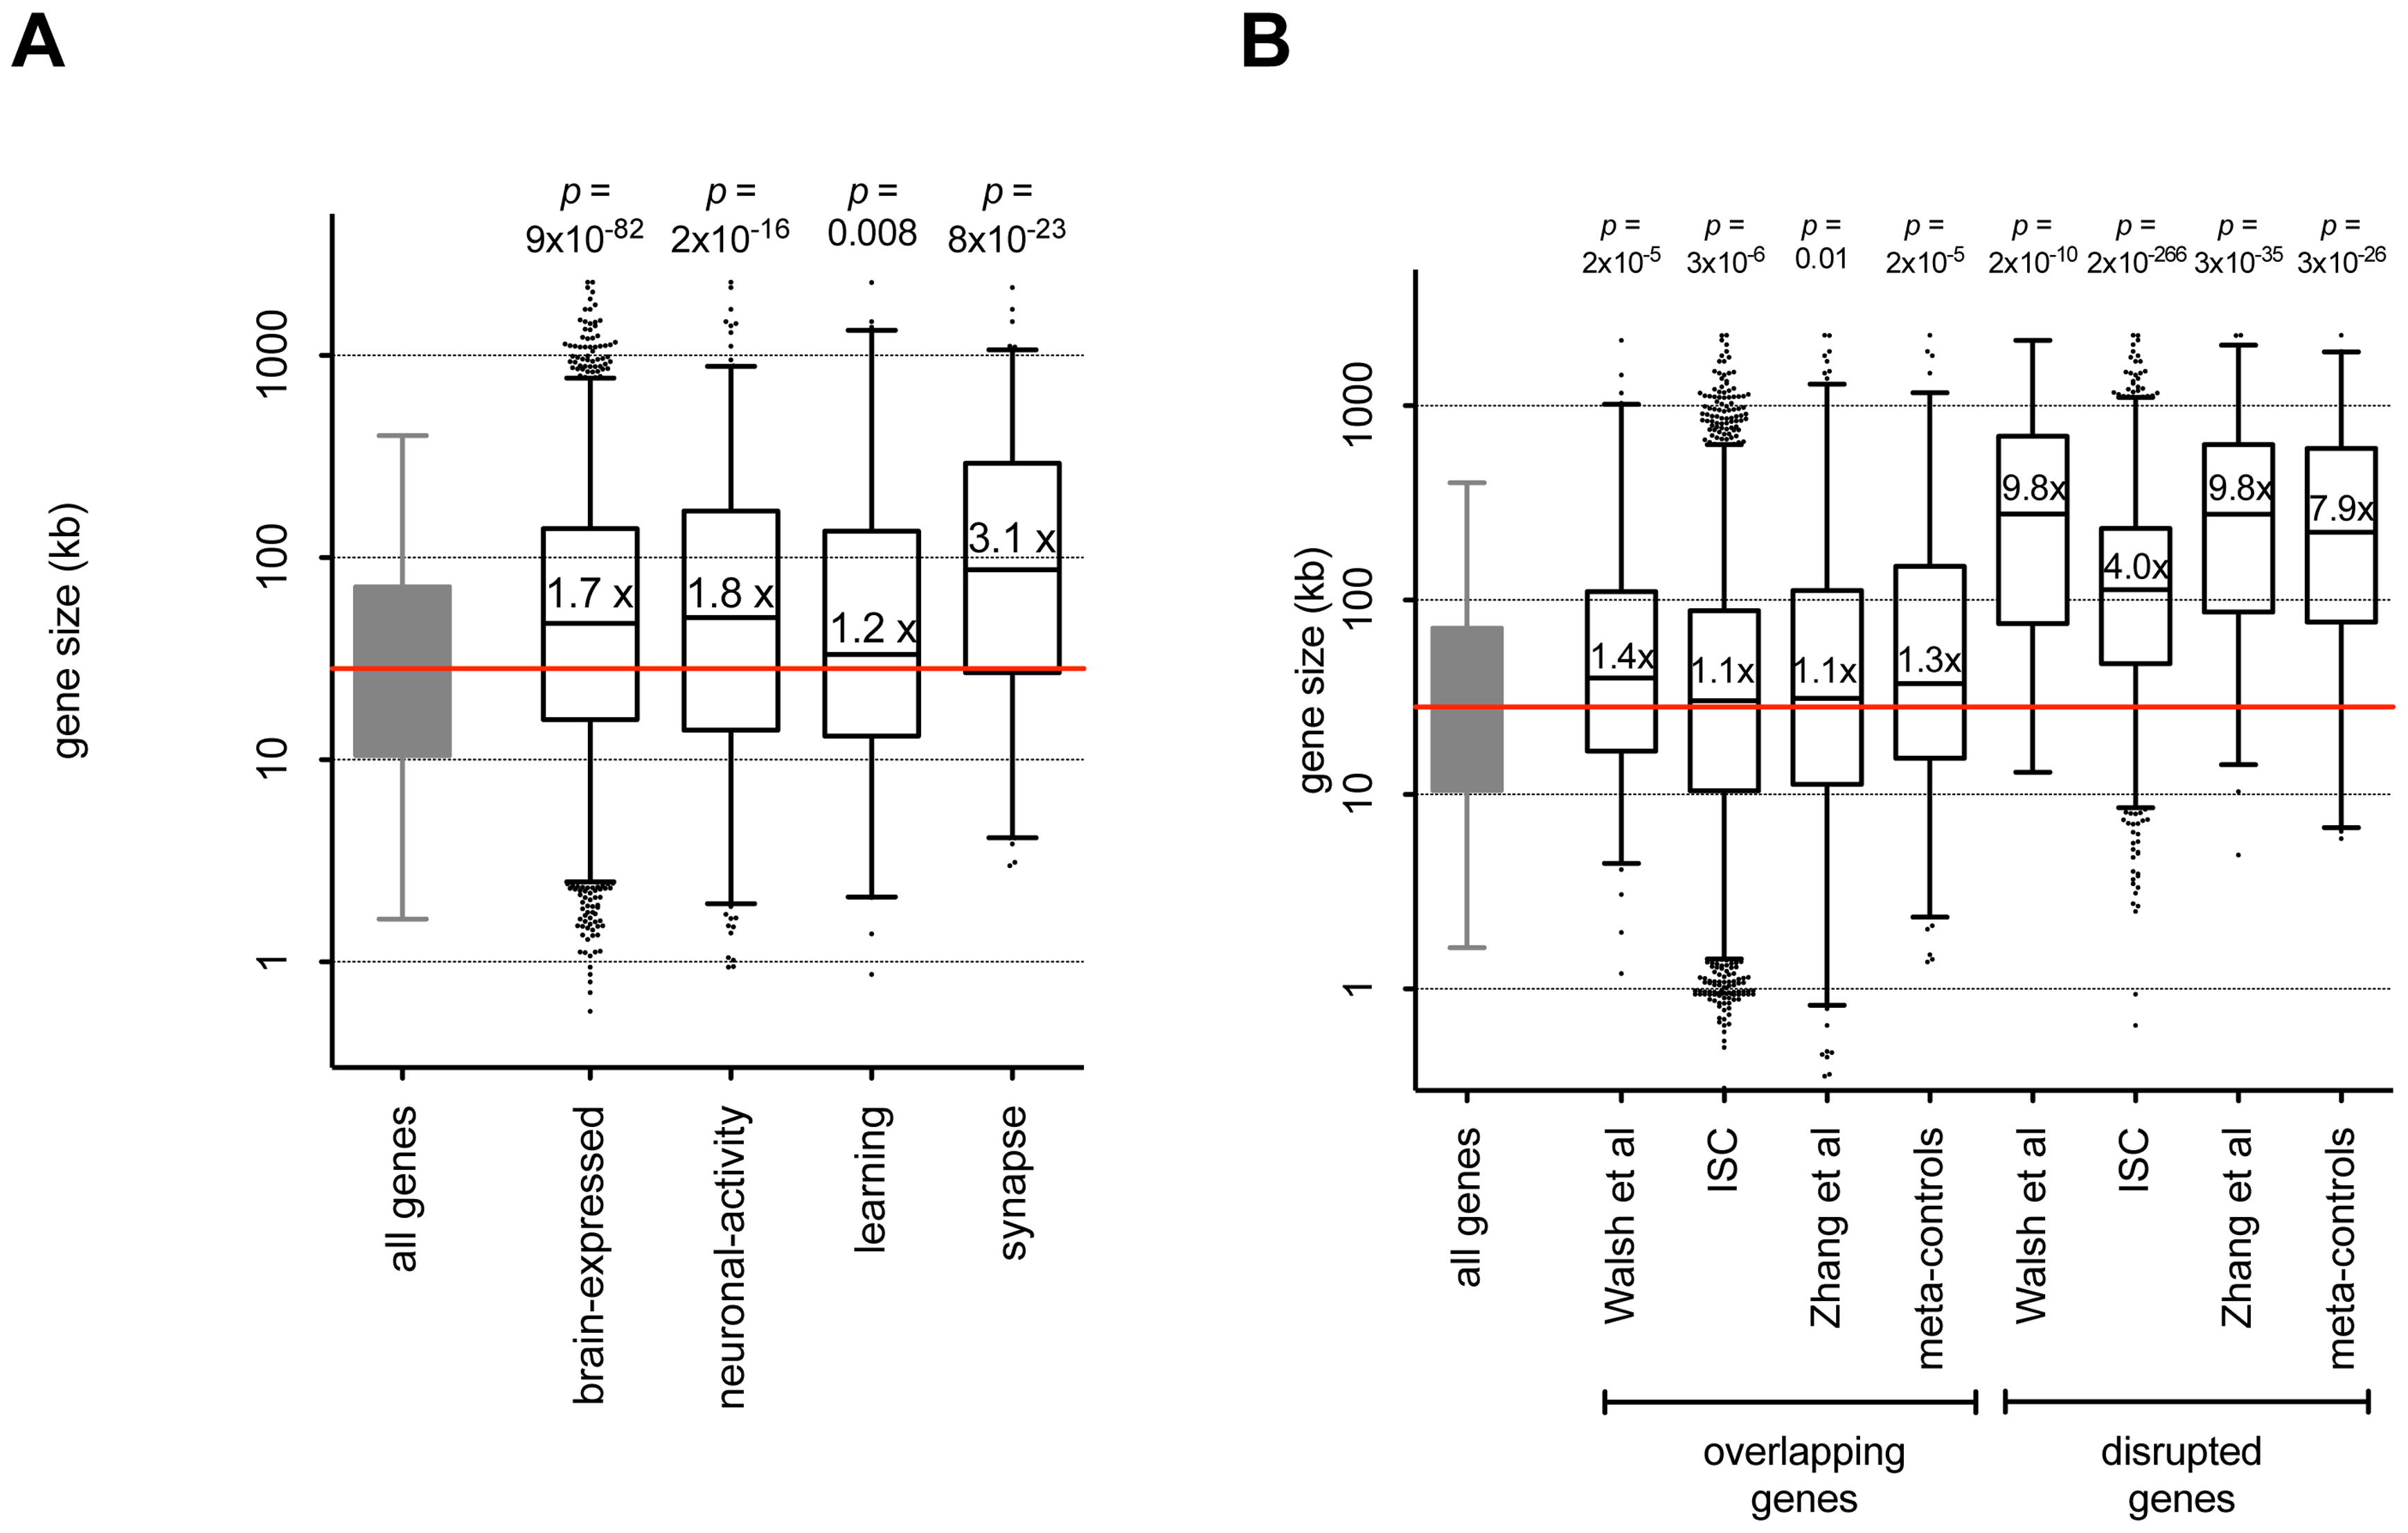 Genes with brain function and genes impacted by CNVs are large.